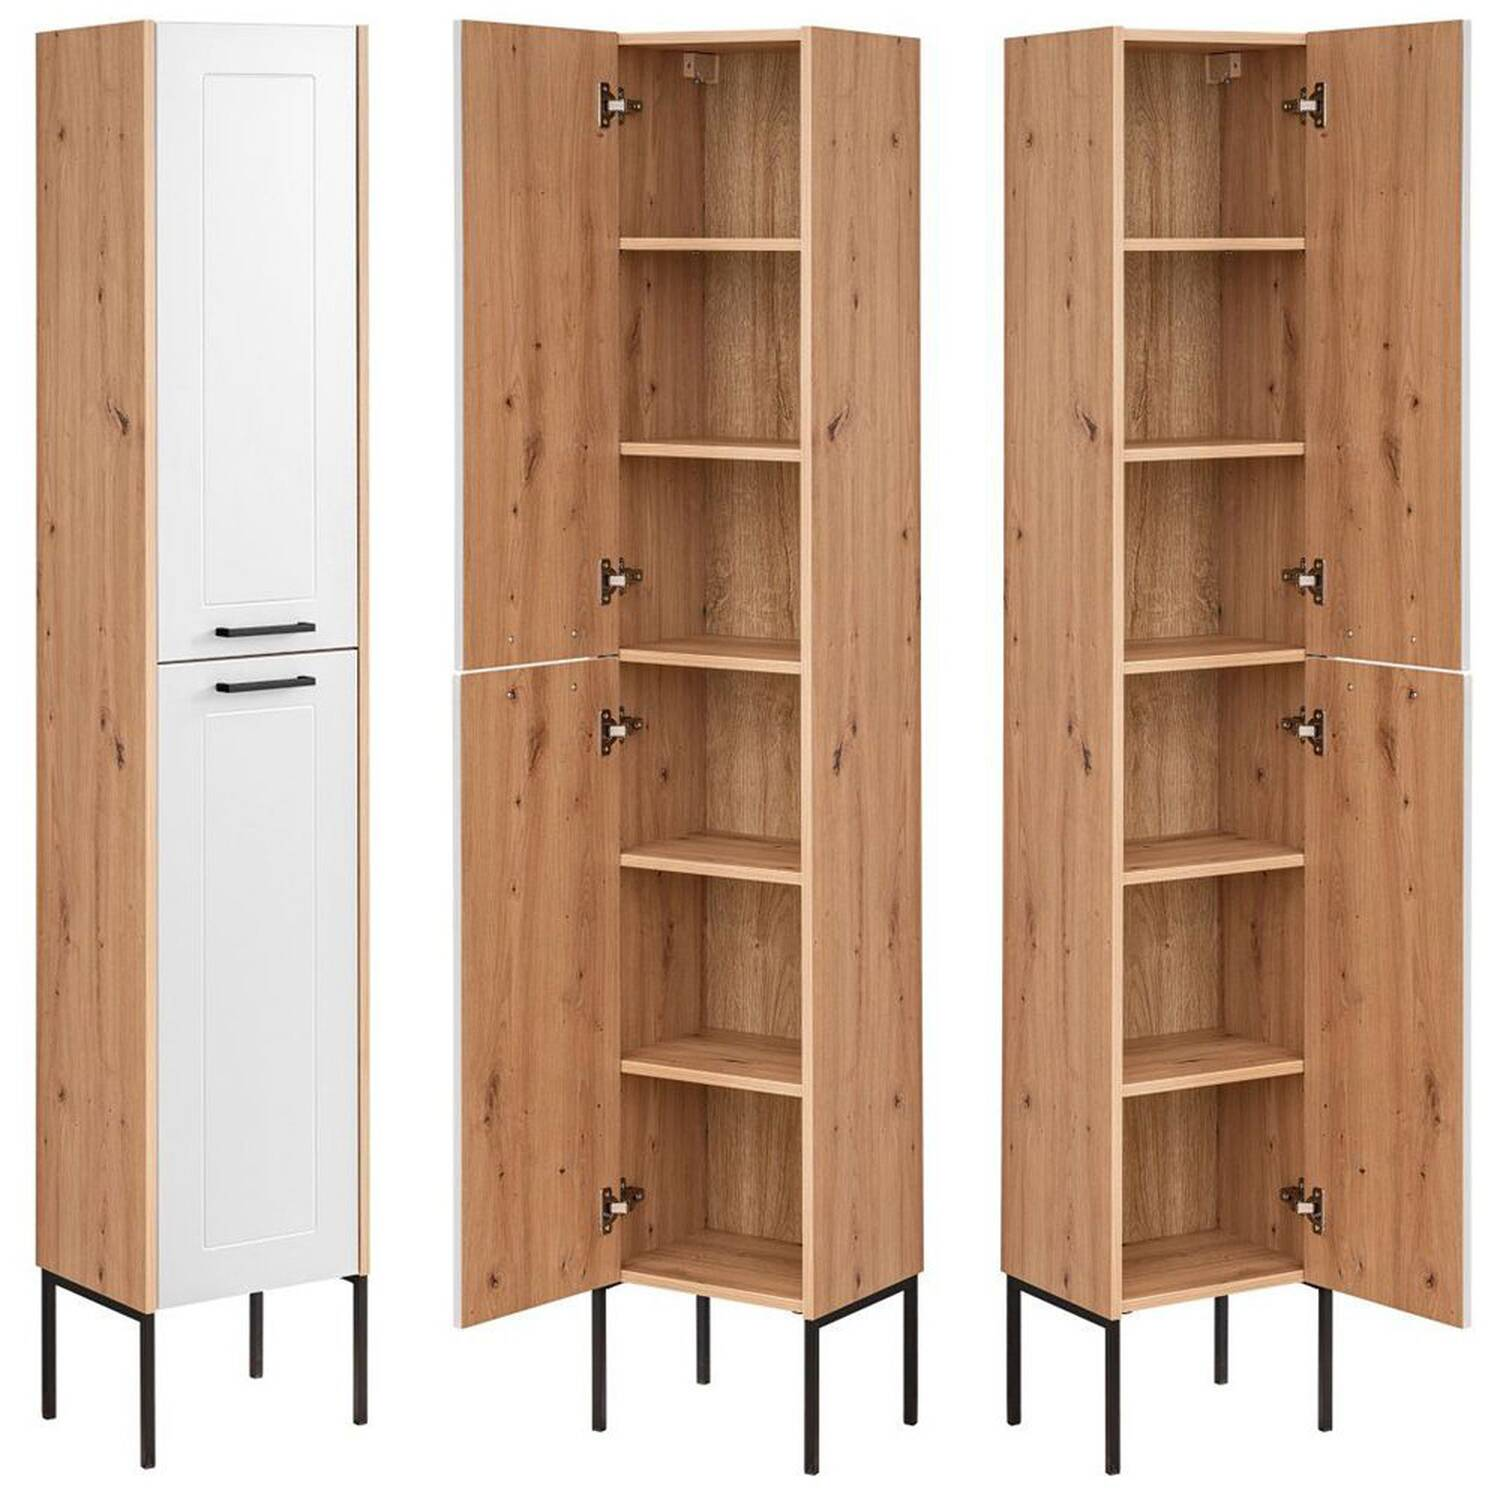 Bathroom Tall Cabinet With 2 Doors With Feet Matera 56 White Matt Whit